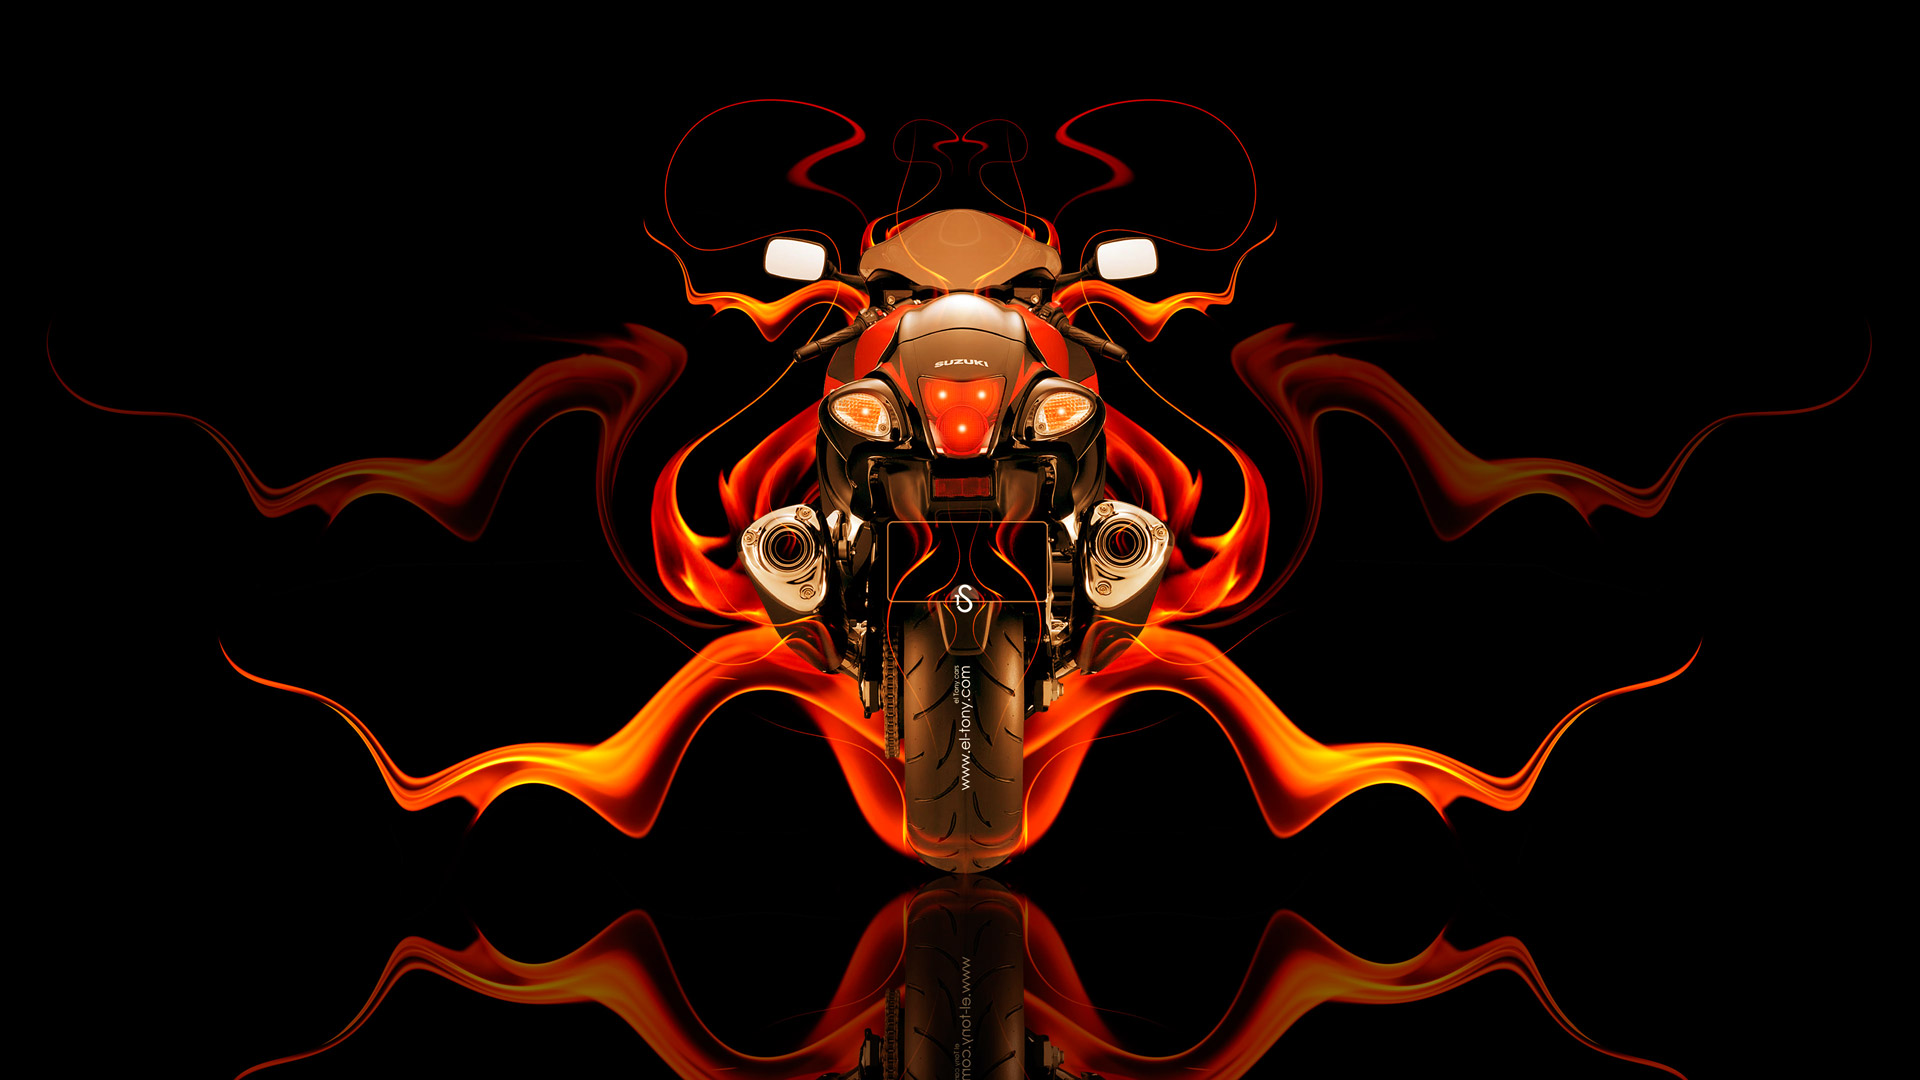 Superieur Moto Suzuki GSX 1300R Hayabusa Back Fire Abstract